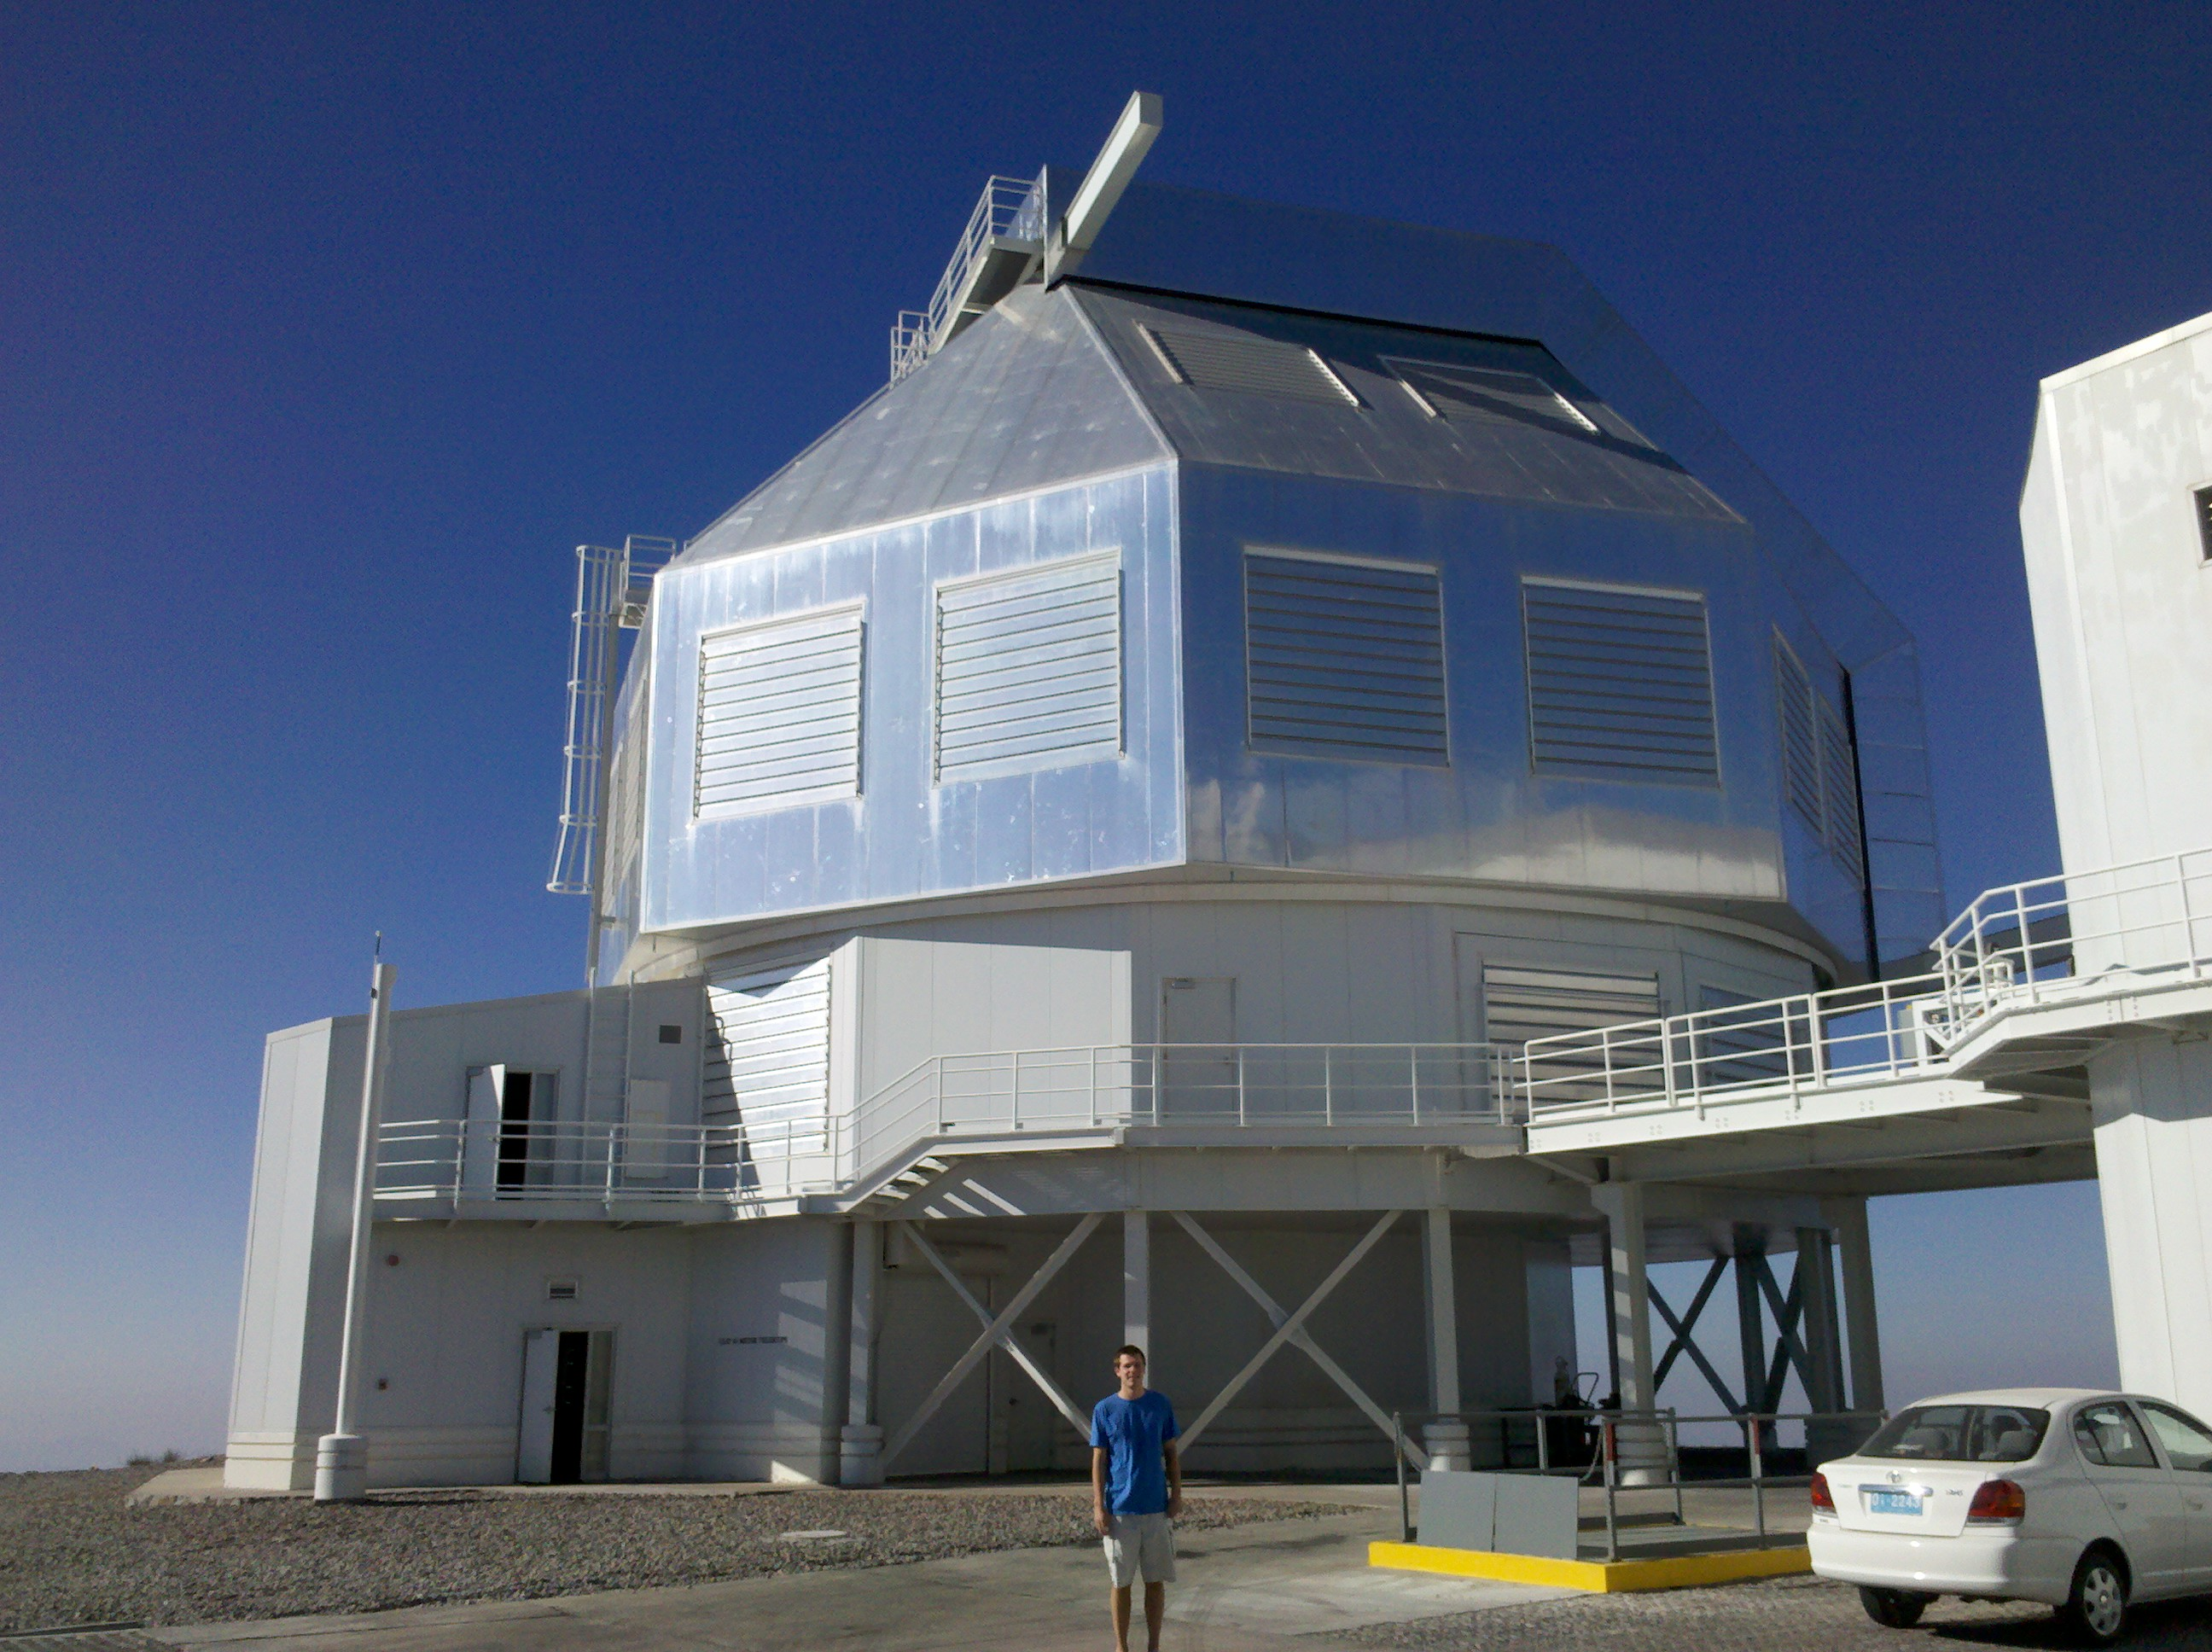 Ian in front of the Clay 6.5 meter telescope at Las Campanas Observatory in Chile.